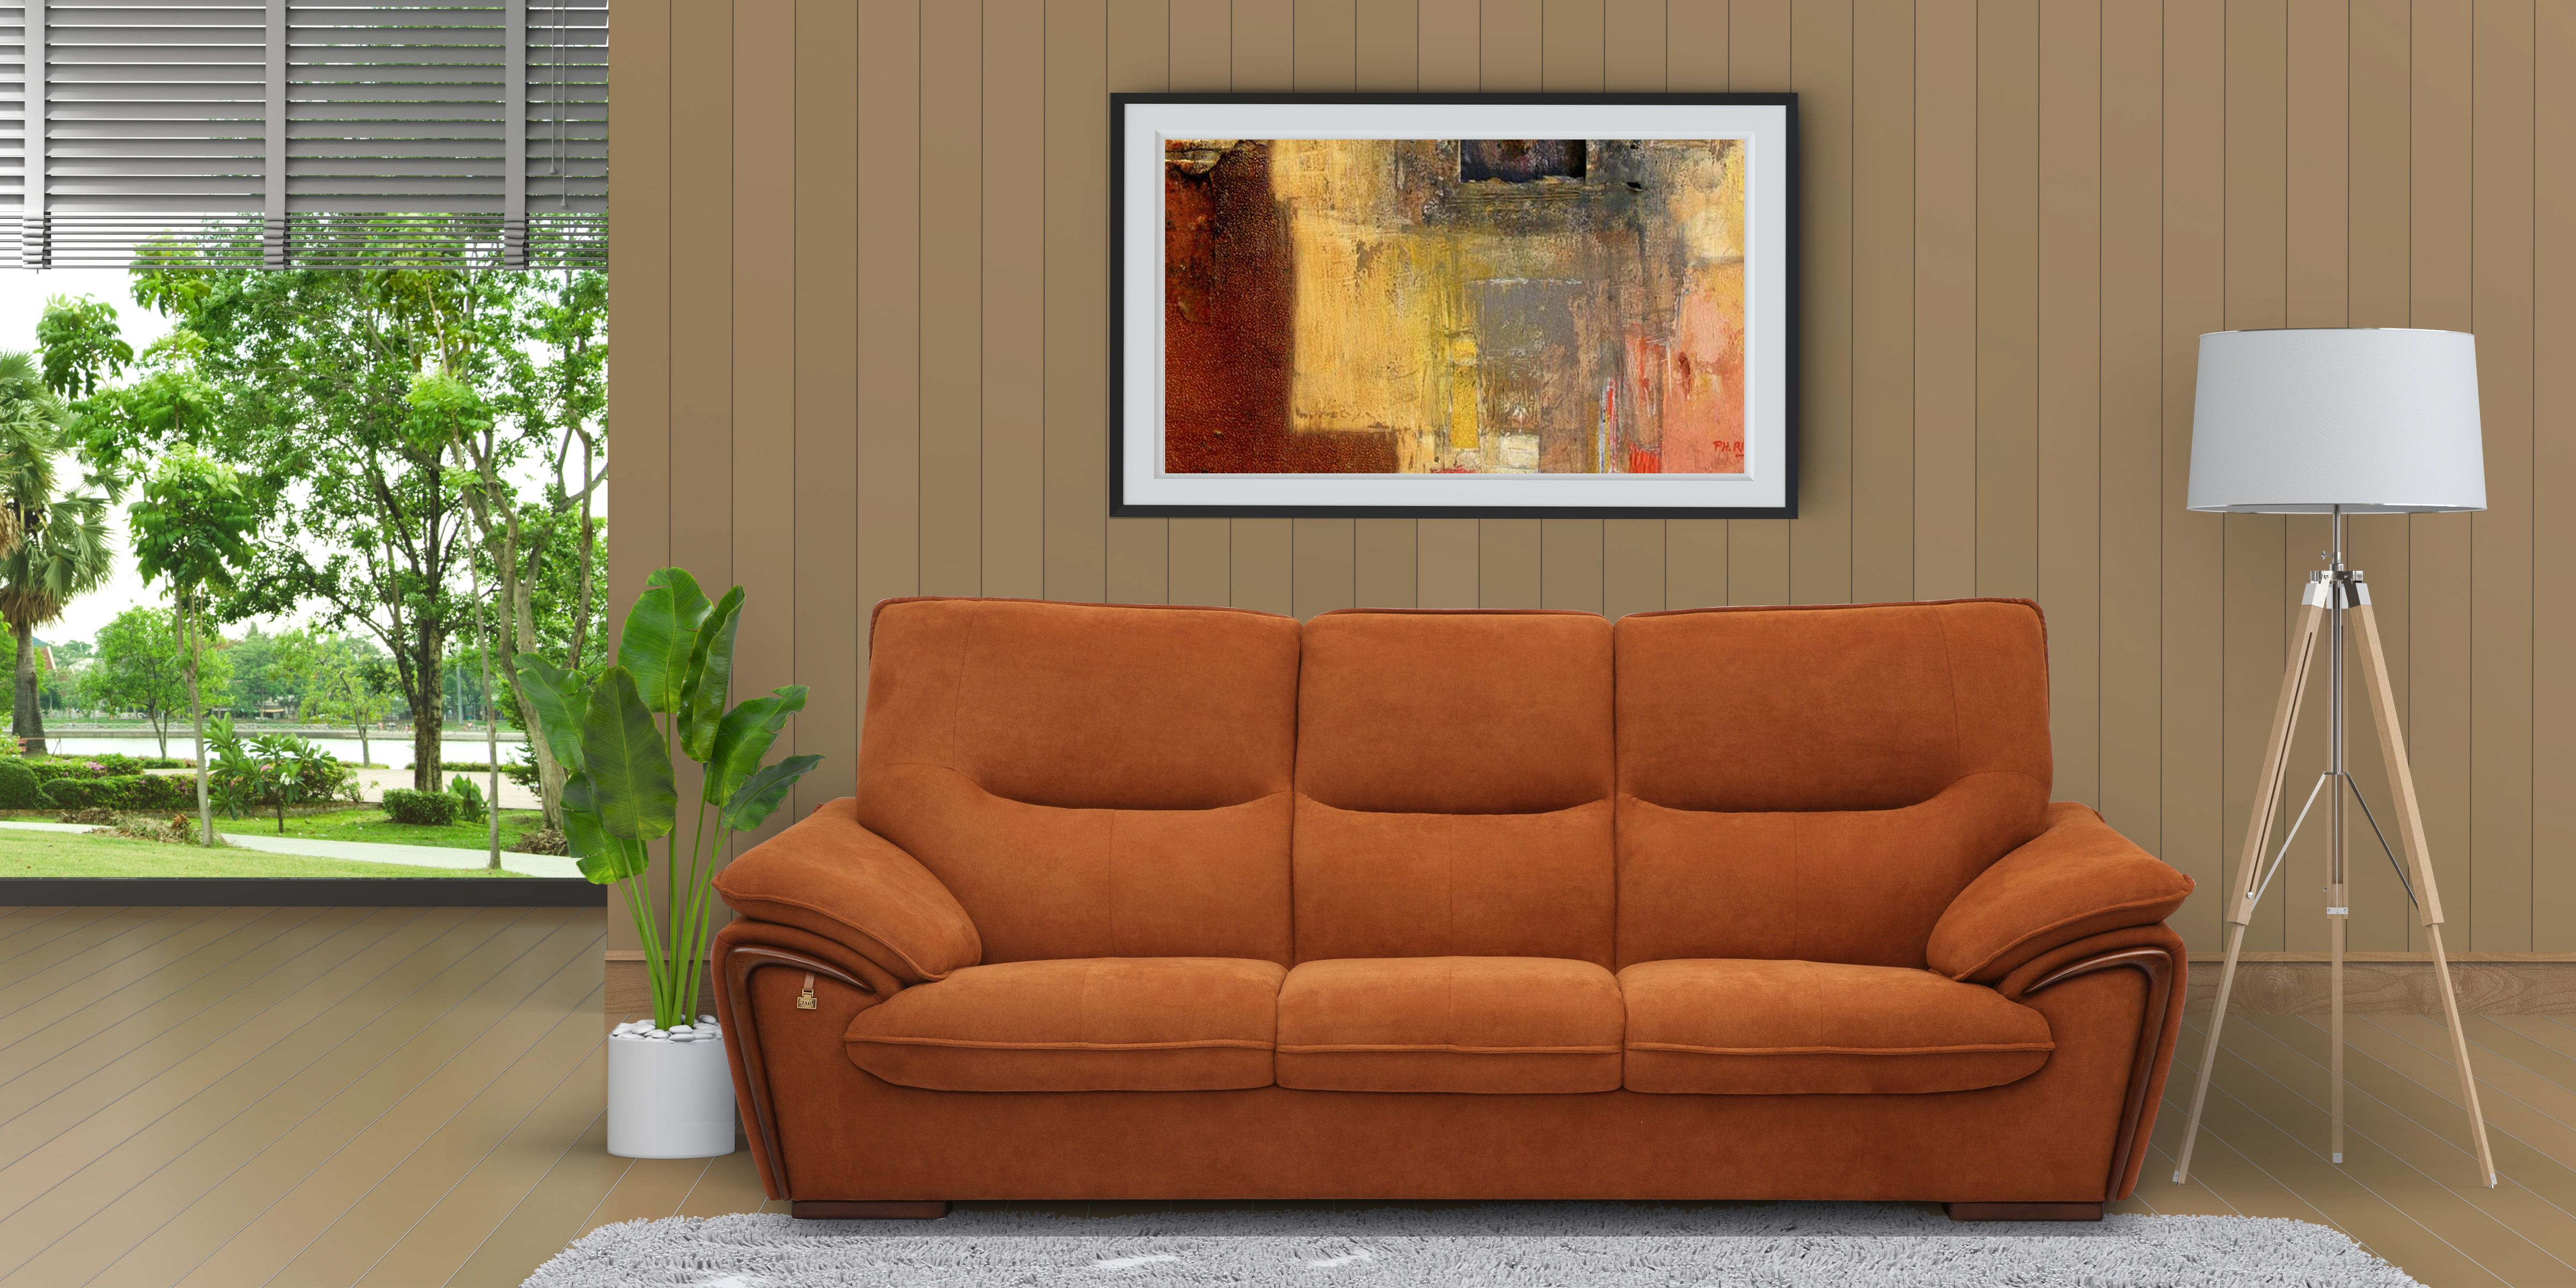 Pin On Leather Sofa Price In Bangladesh